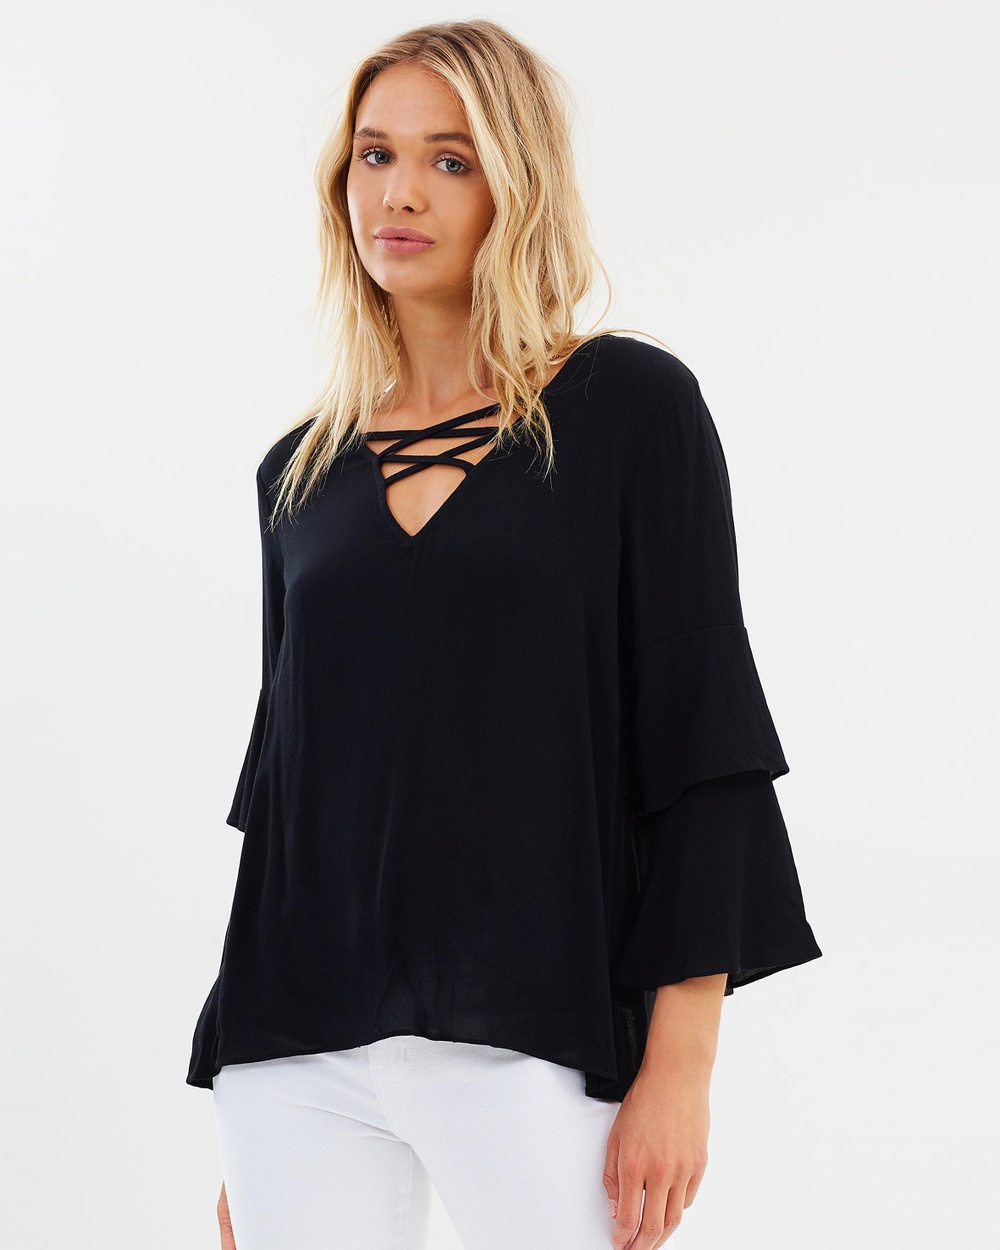 Sass Flossy Double Bell Blouse Tops Black Flossy Double Bell Blouse